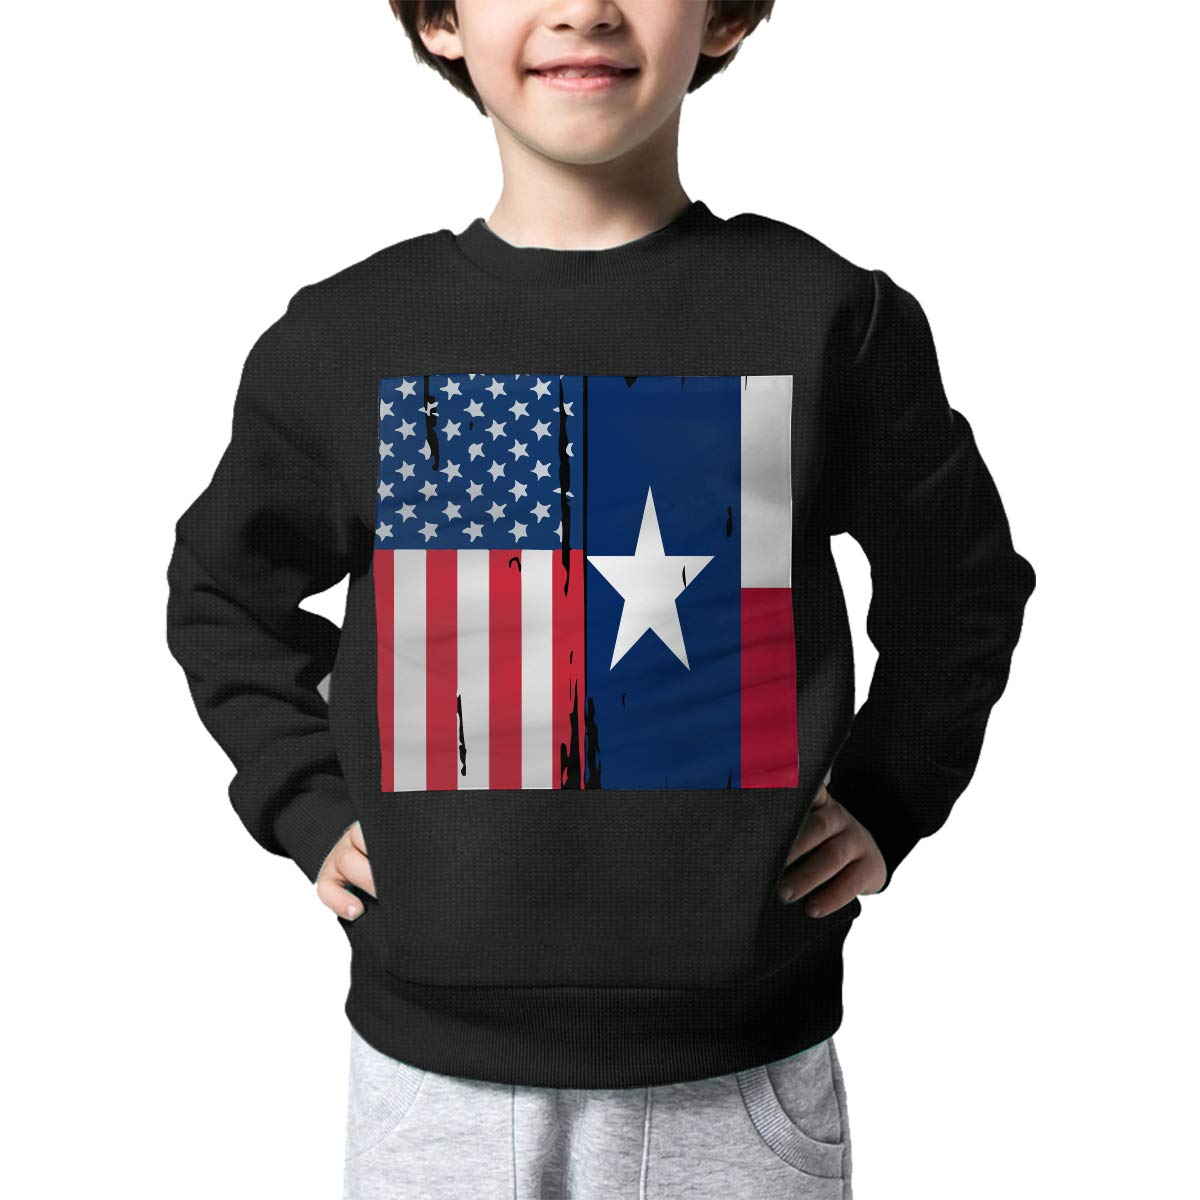 NJKM5MJ Boys Girls American Texas Flag Lovely Sweaters Soft Warm Childrens Sweater